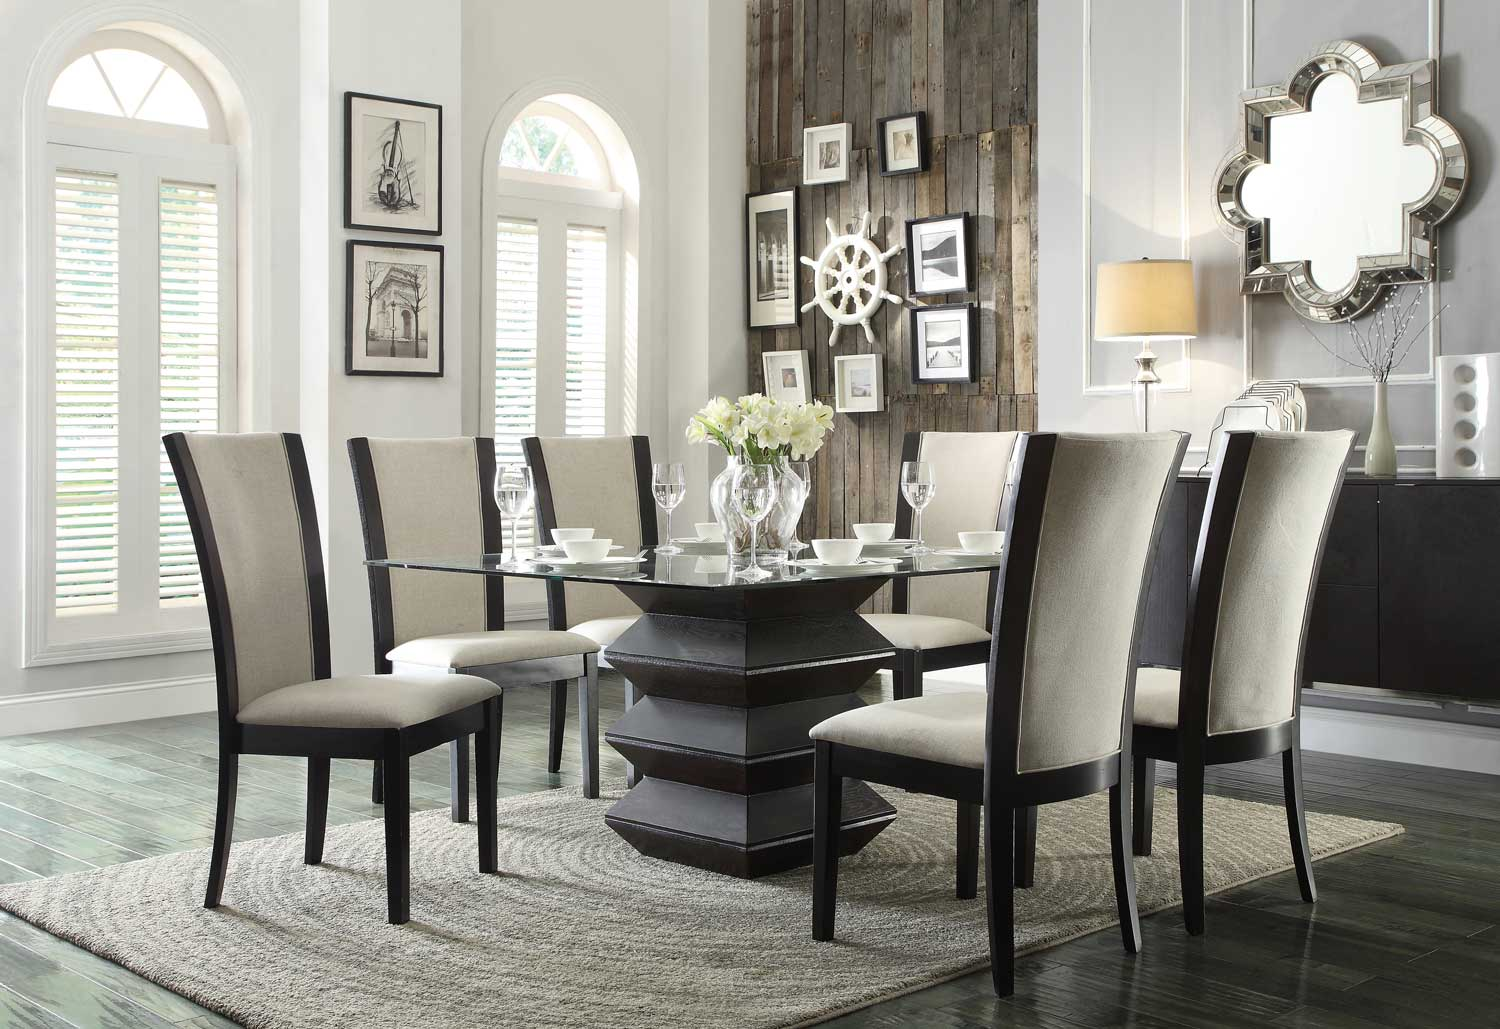 Homelegance Havre Dining Set Beige Fabric Chairs